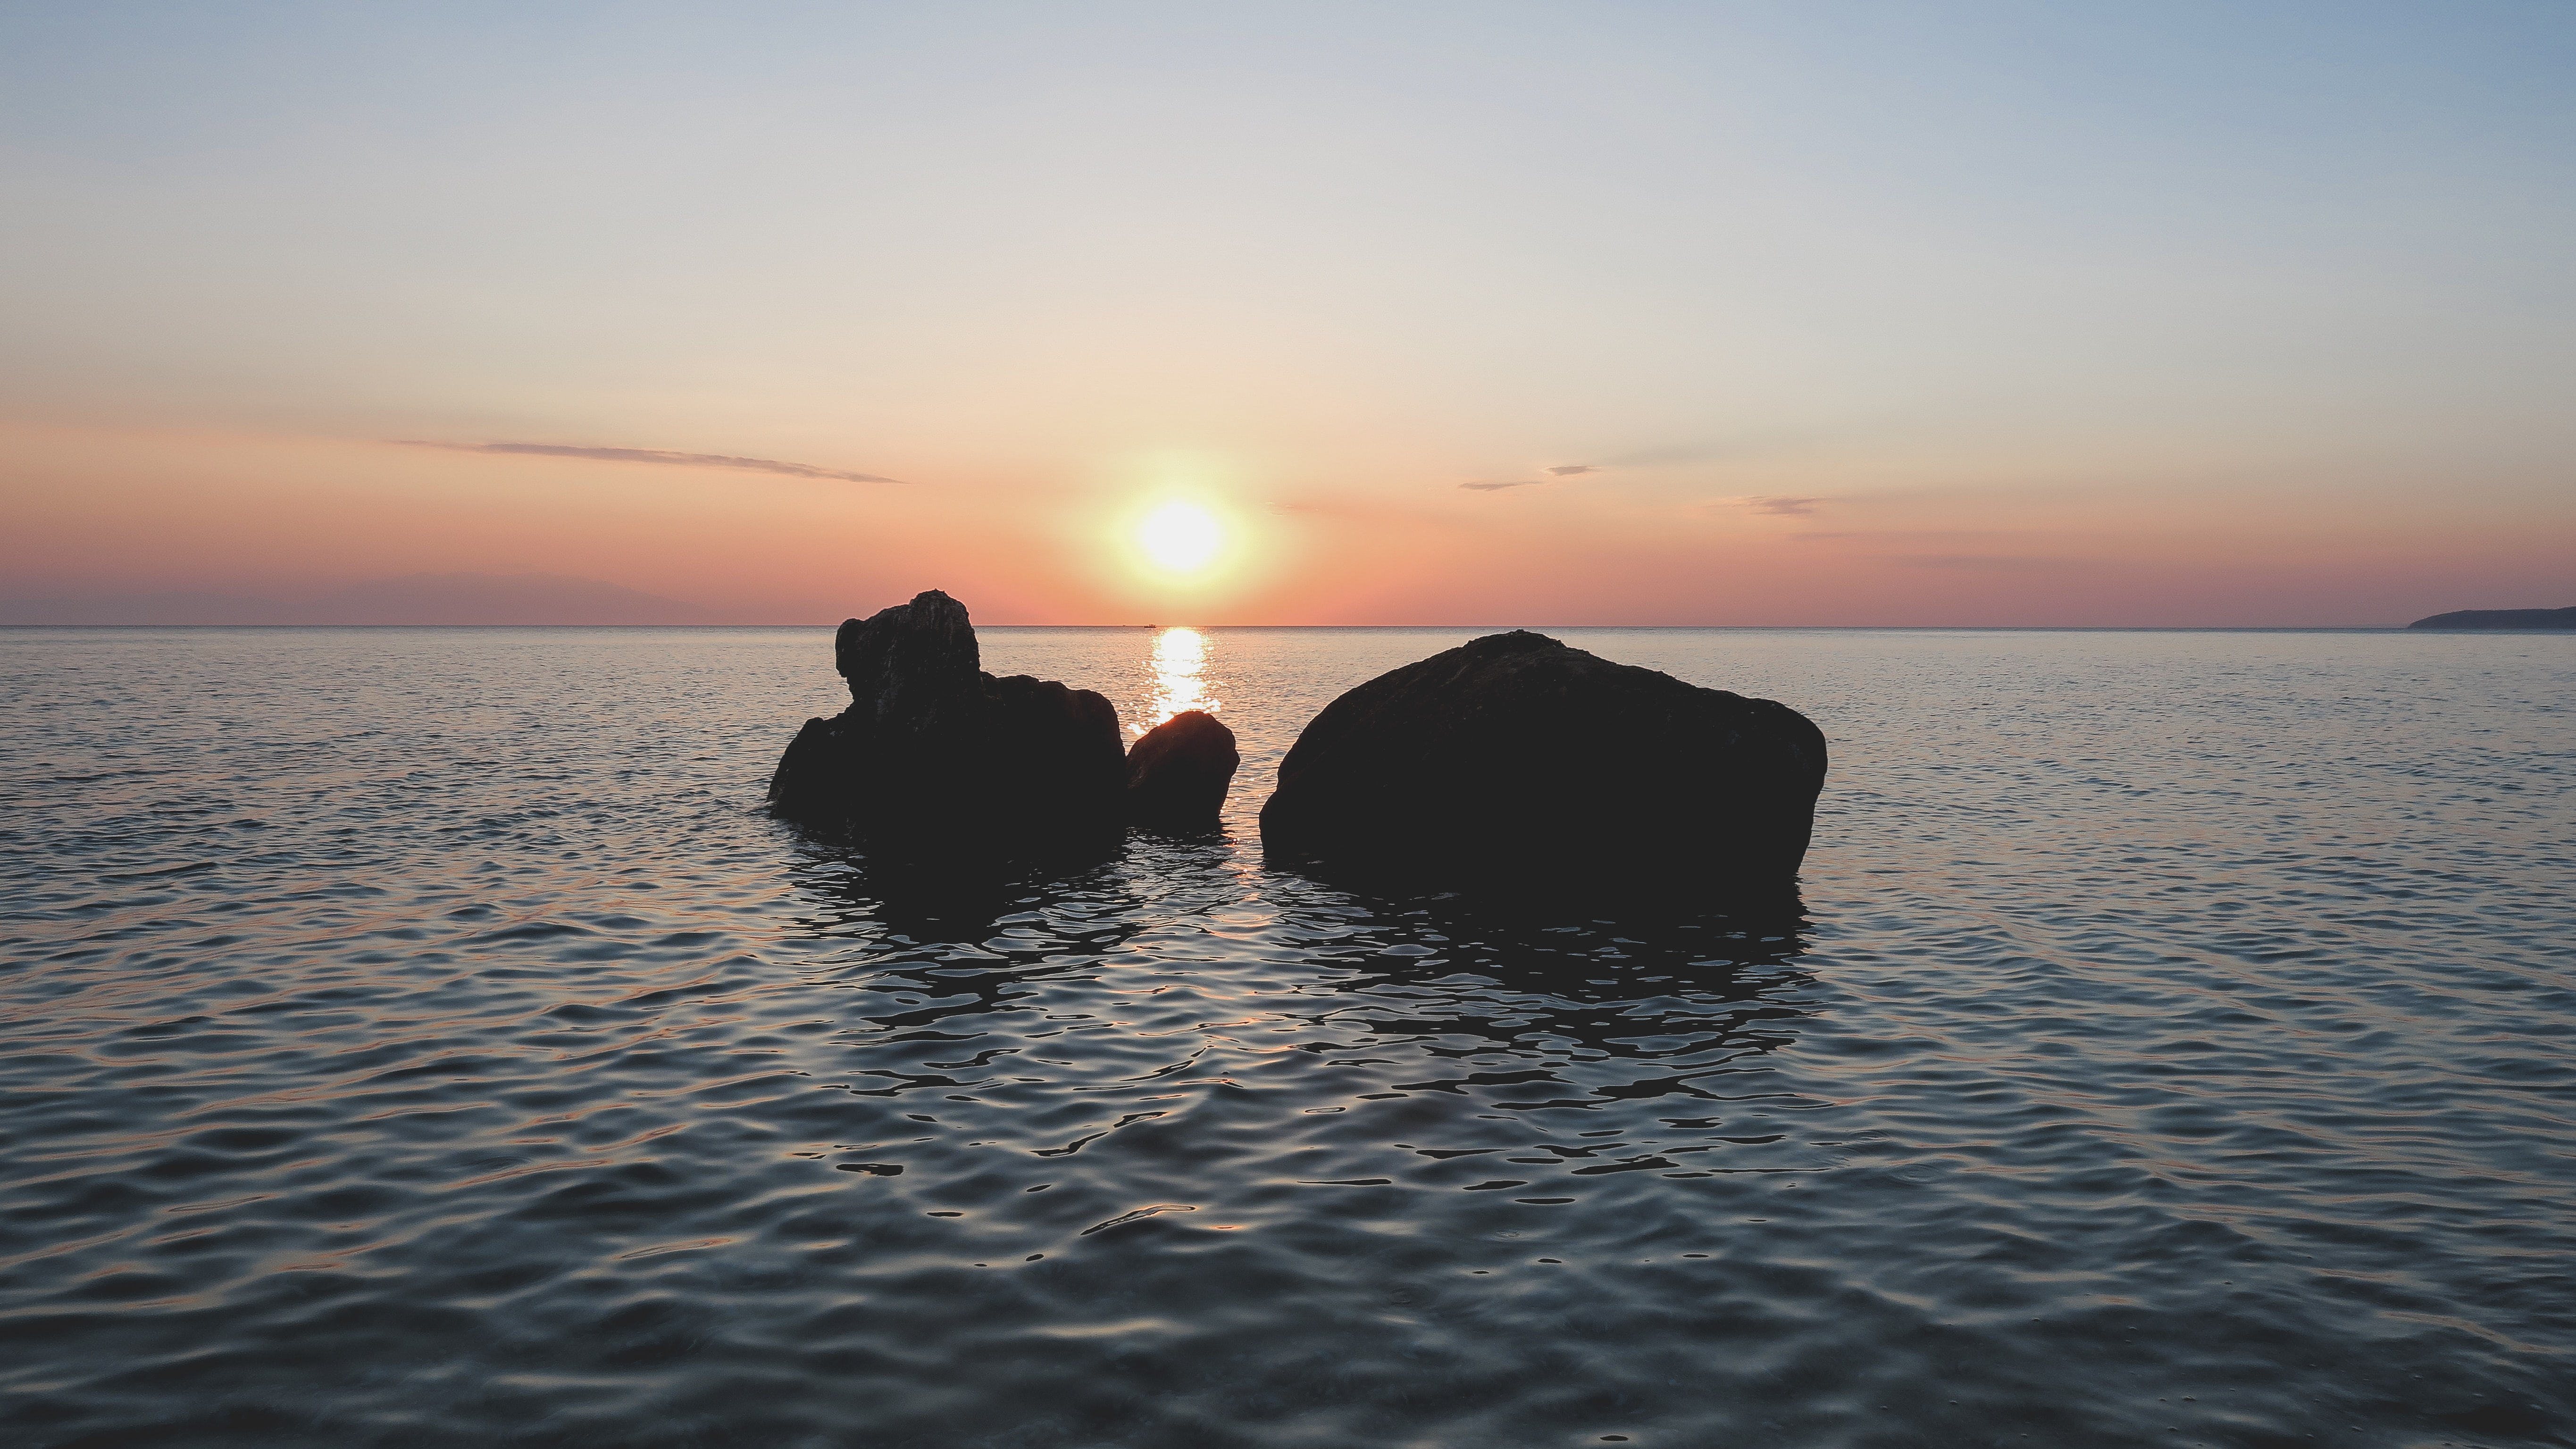 silhouette of rocks on body of water during golden hour